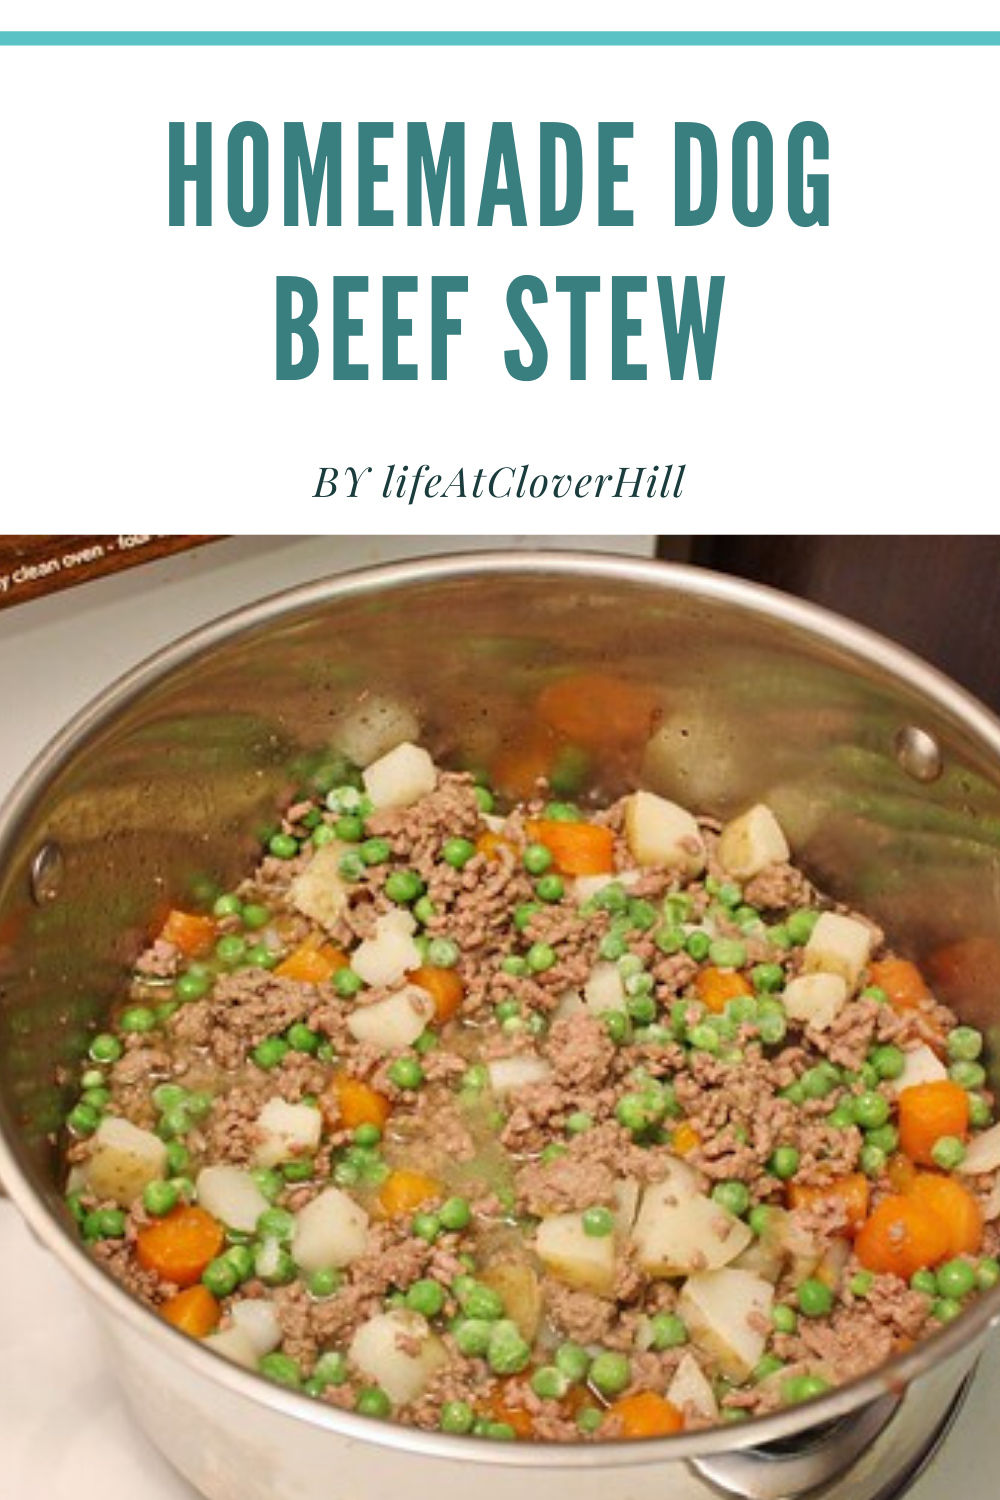 Homemade Dog Beef Stew In 2020 Healthy Dog Food Recipes Dog Food Recipes Homemade Dog Food